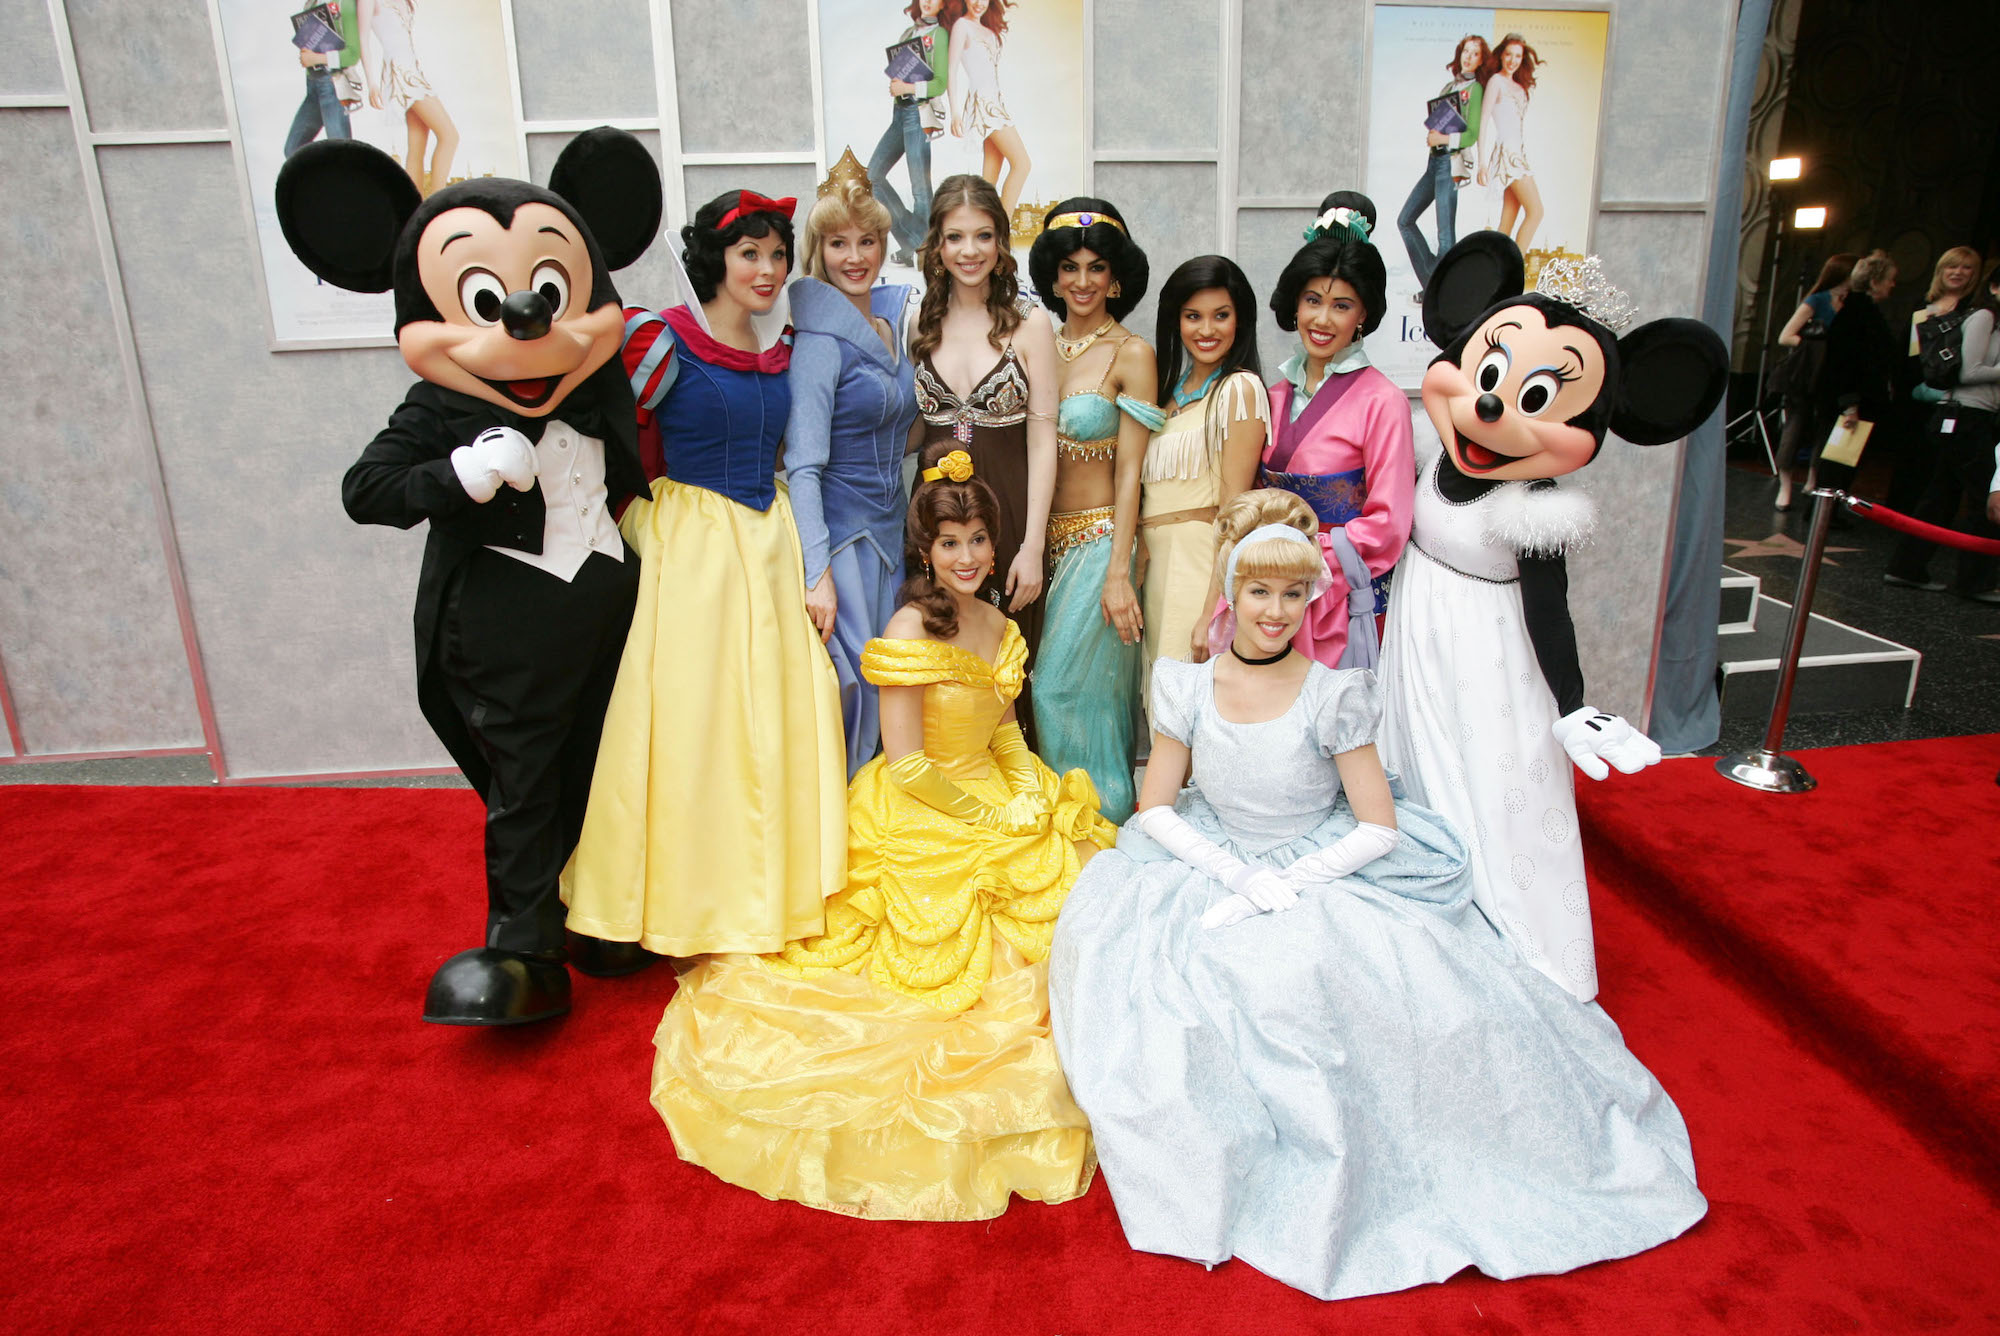 Michelle Trachtenberg poses with Disney princesses at the Walt Disney premiere of 'The Ice Princess' on March 13, 2005